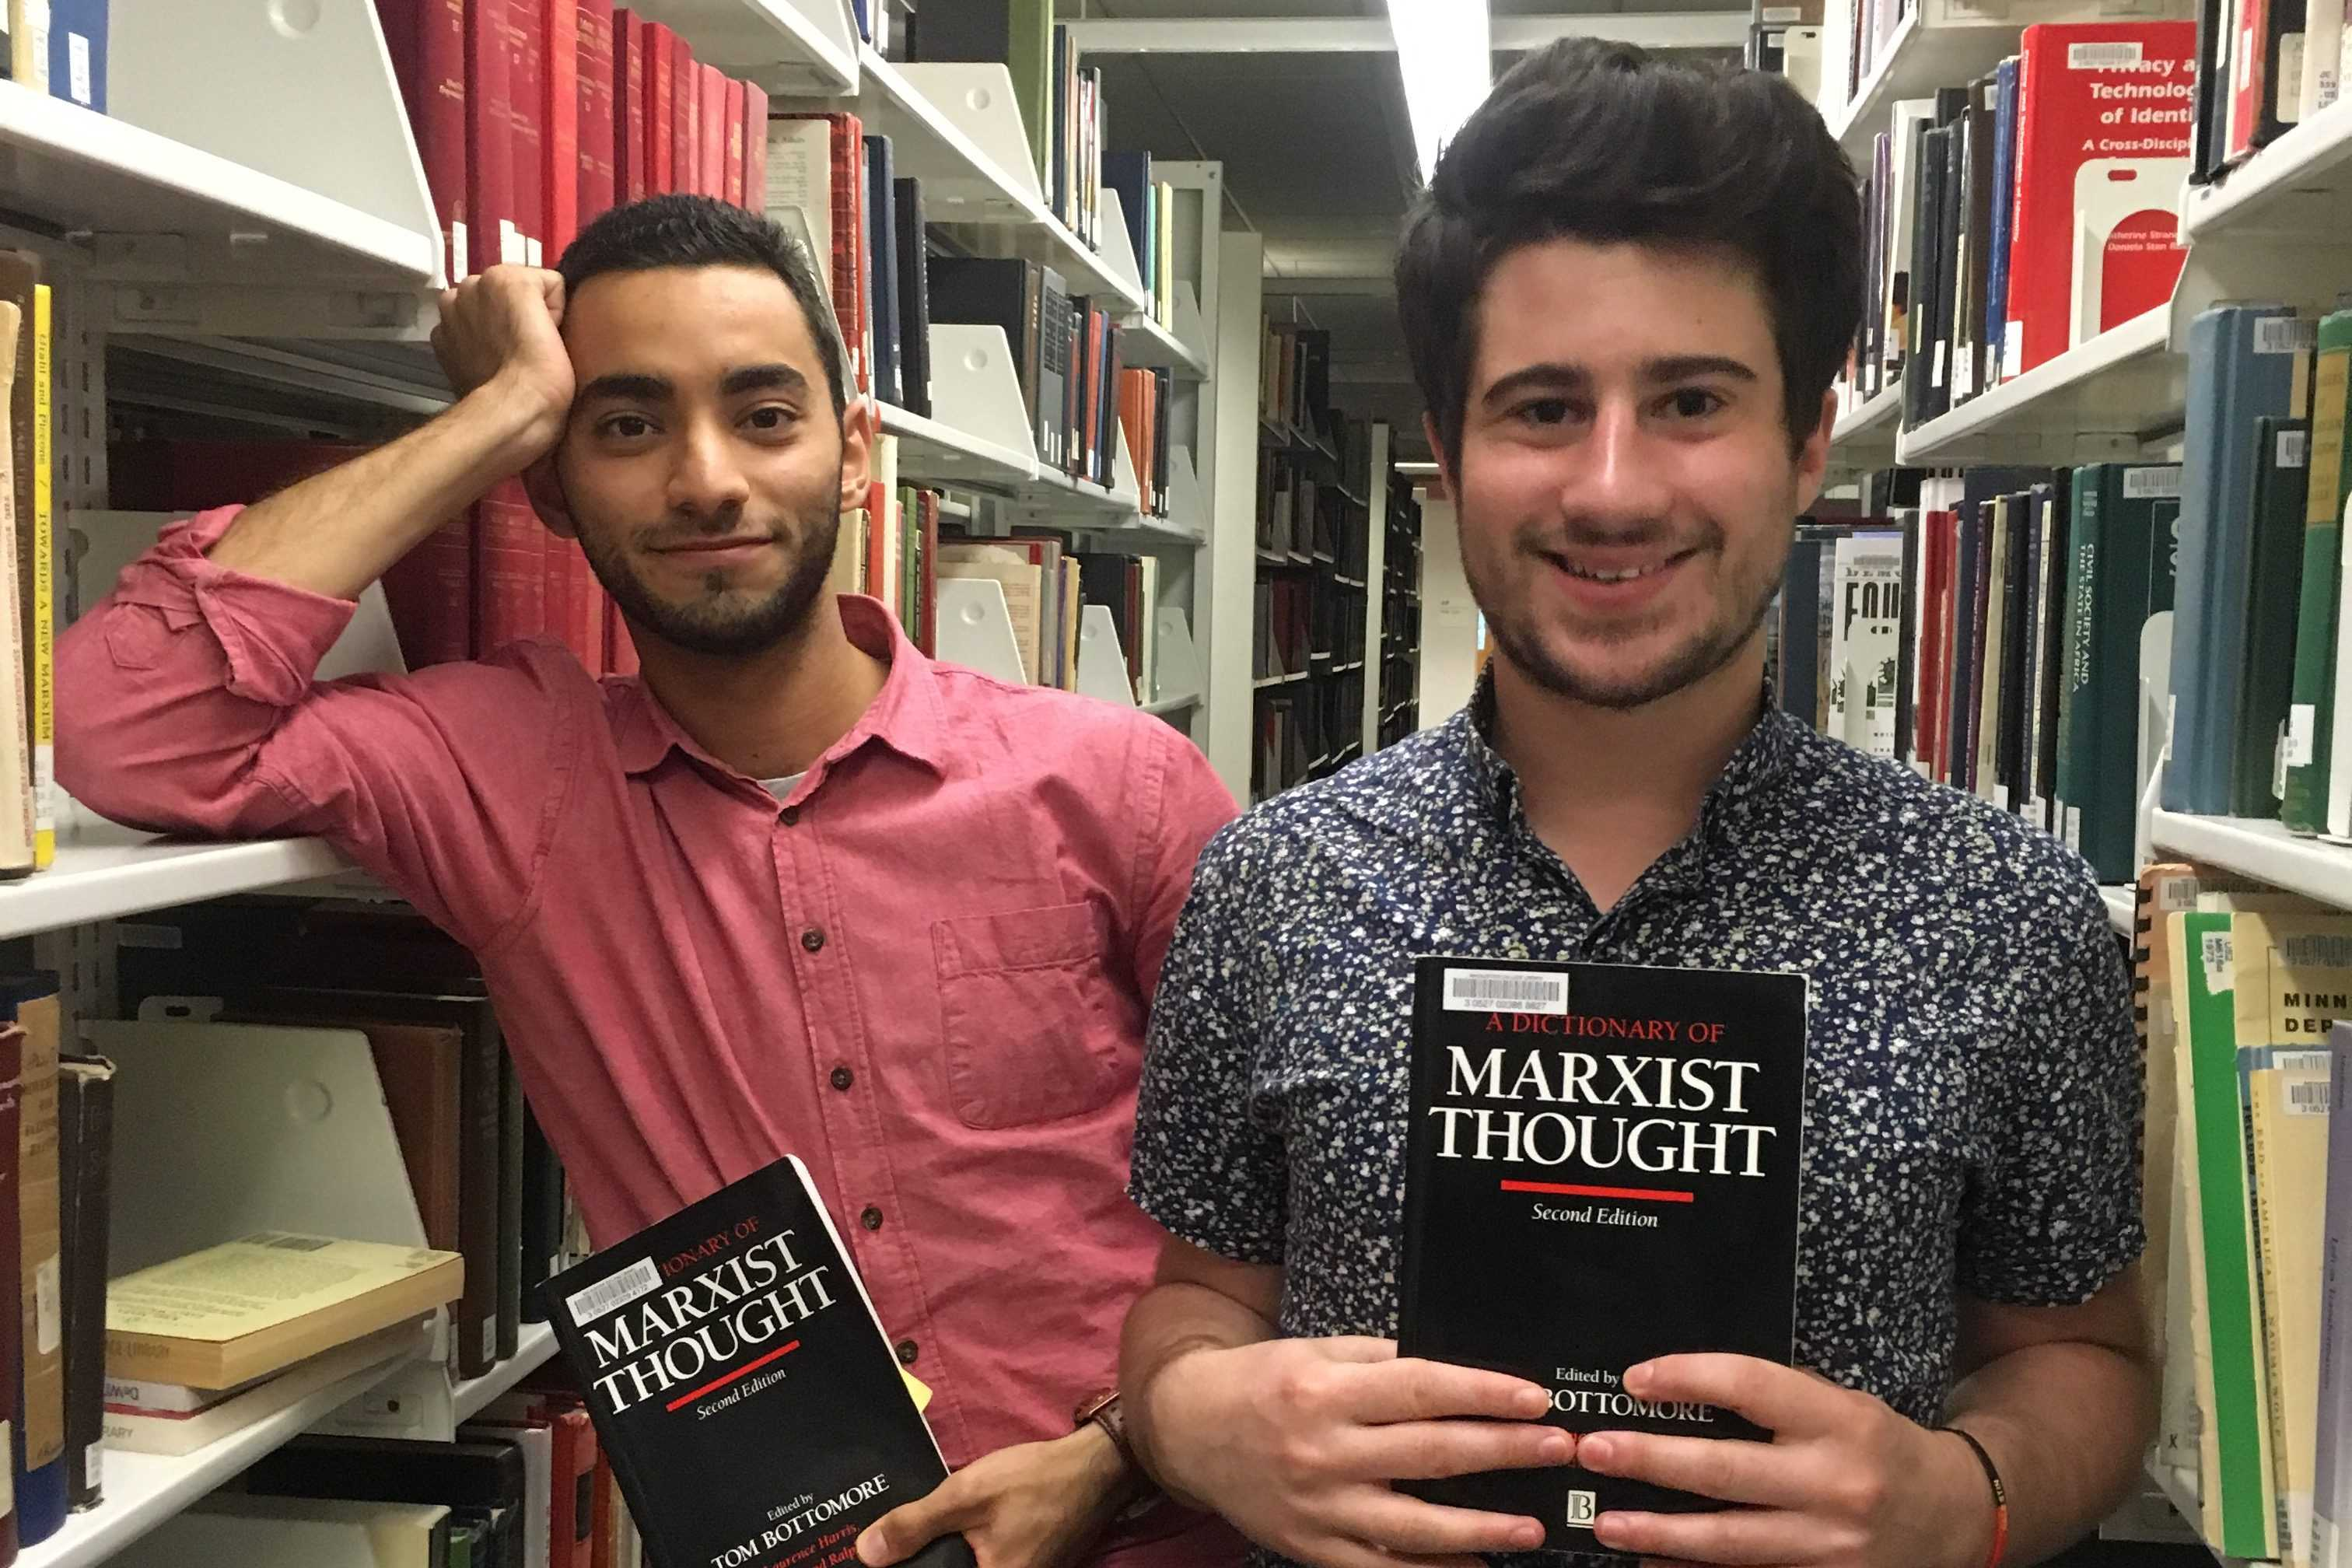 Jacob Bessen '17 and Muath Ibaid '17 enjoy light reading in the library. Photo by Kate Rhodes '17.